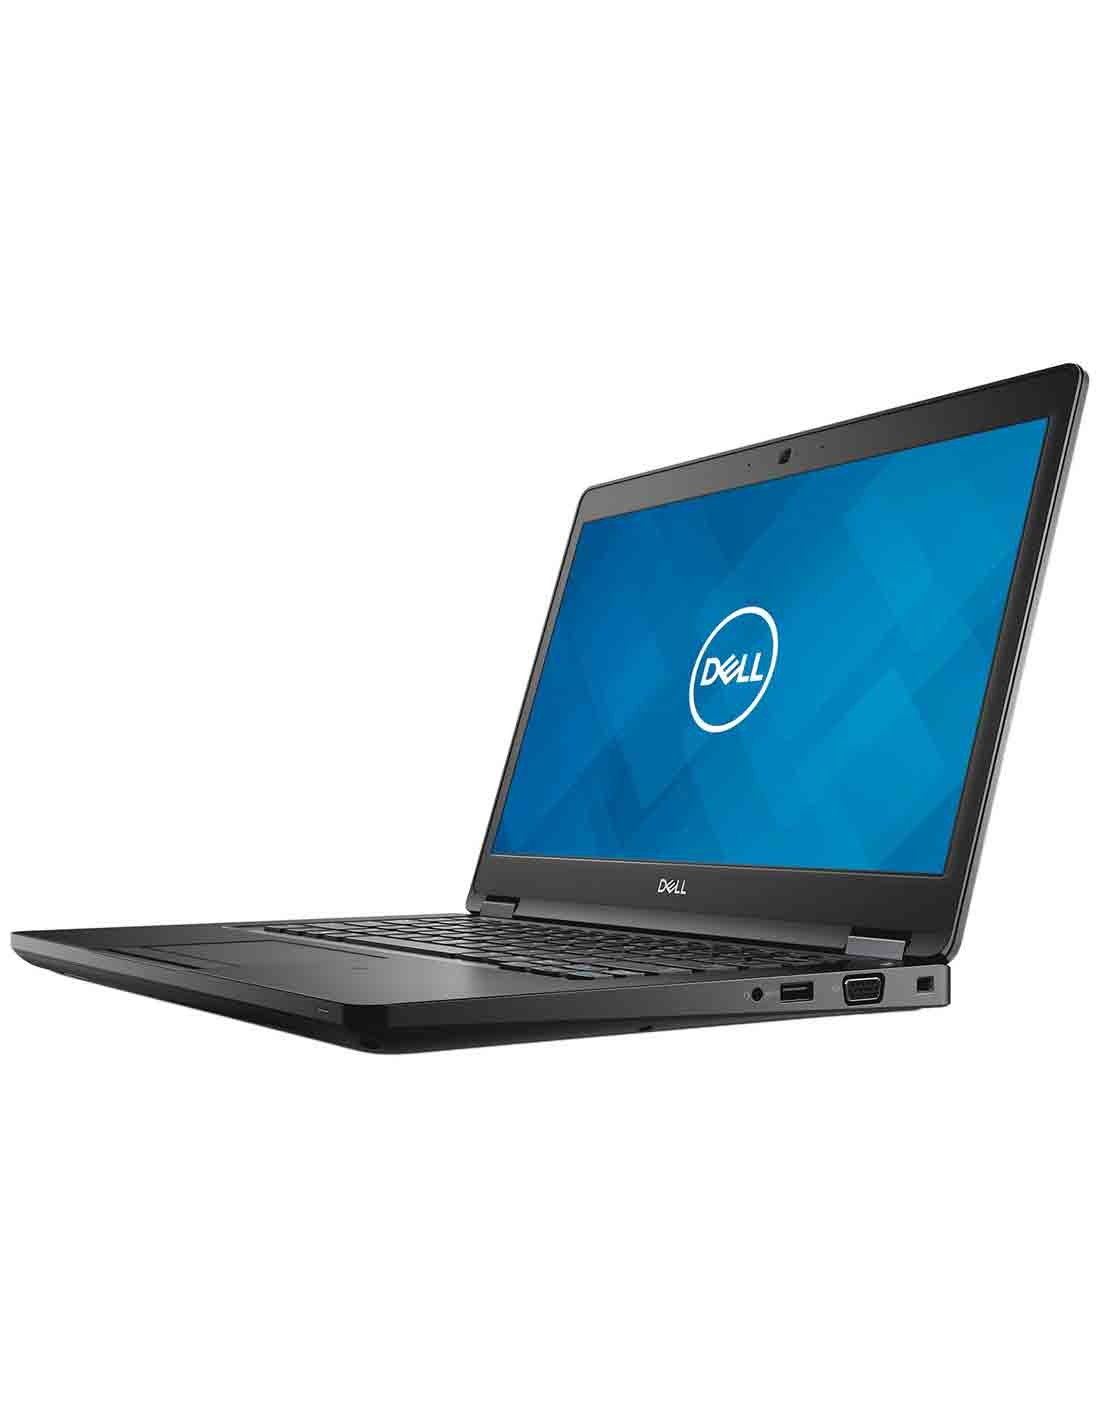 Dell Latitude 5580 i5 images and photos in Dubai computer store